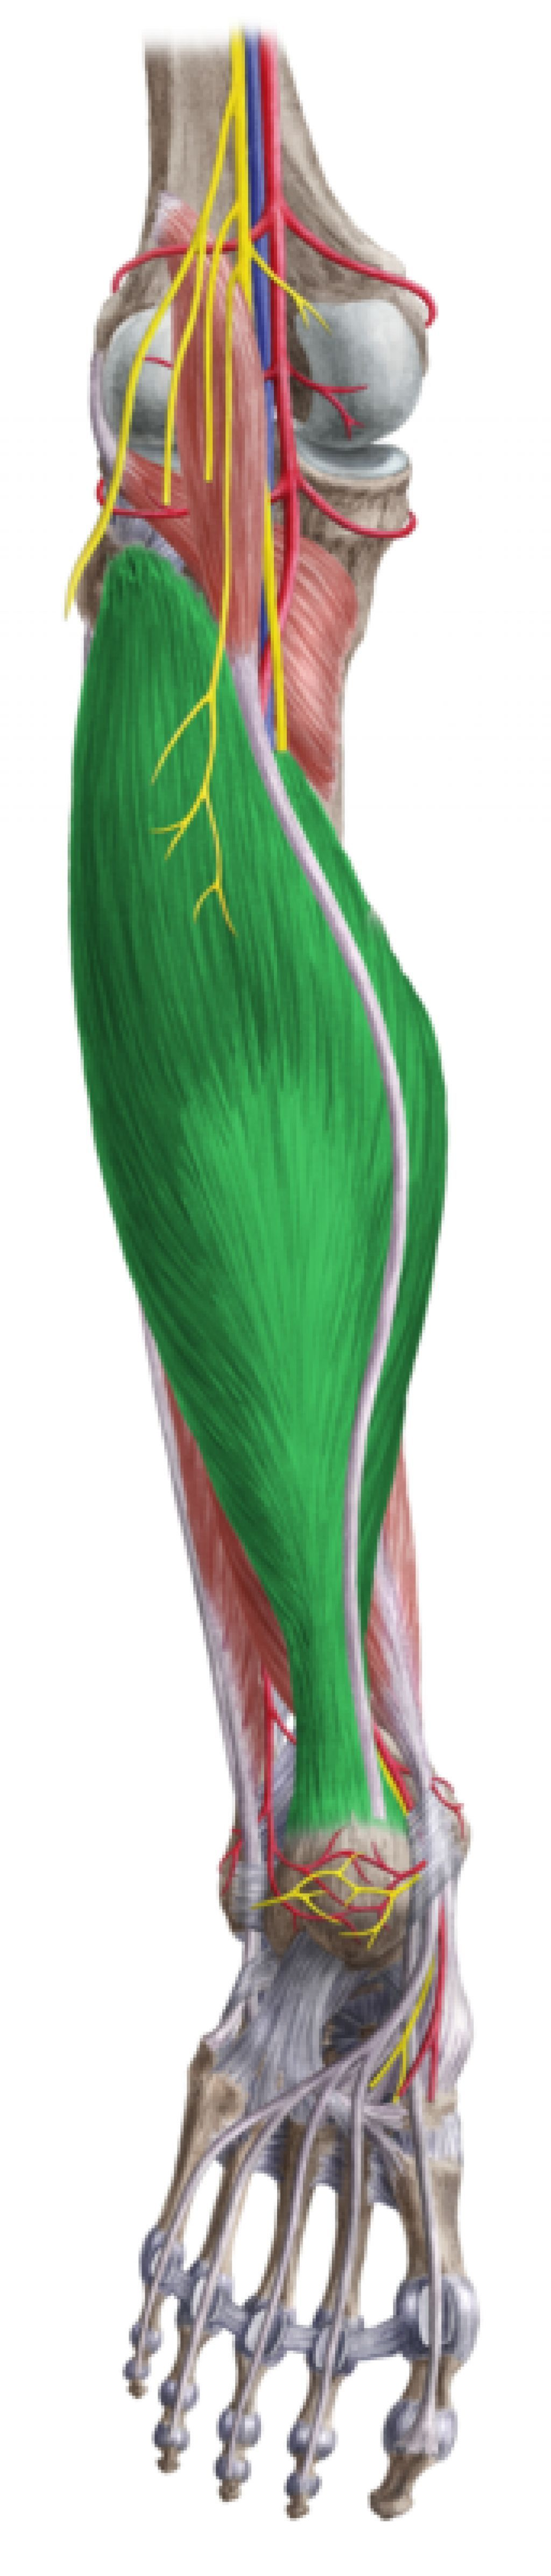 Triceps Surae Muscle | Anatomy | Pinterest | Muscles, Muscle anatomy ...